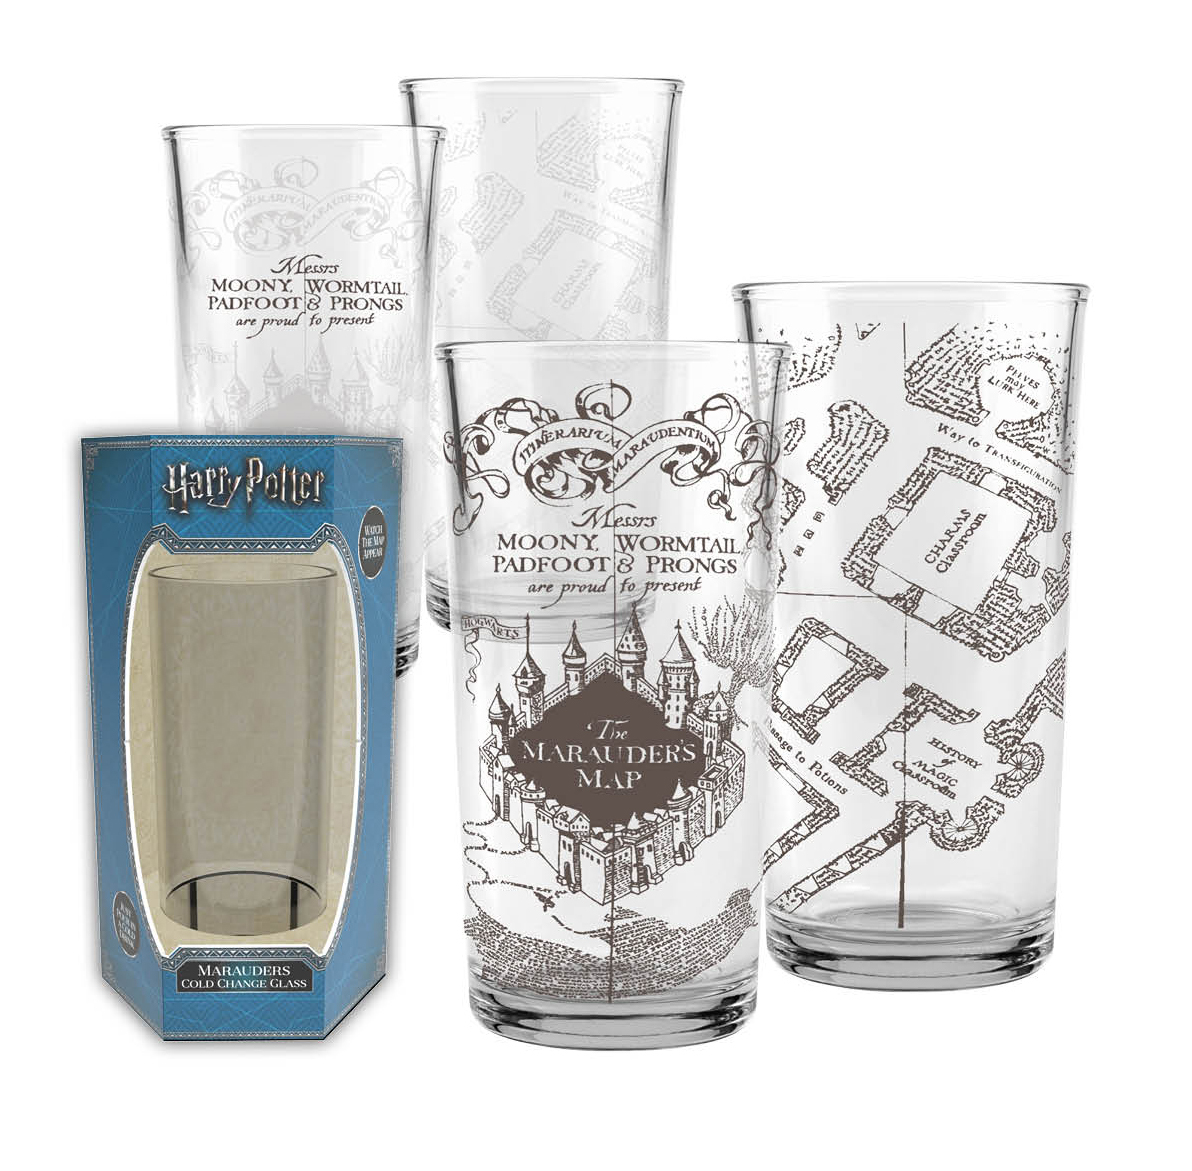 Harry Potter: Marauders Map Cold Change Glass image